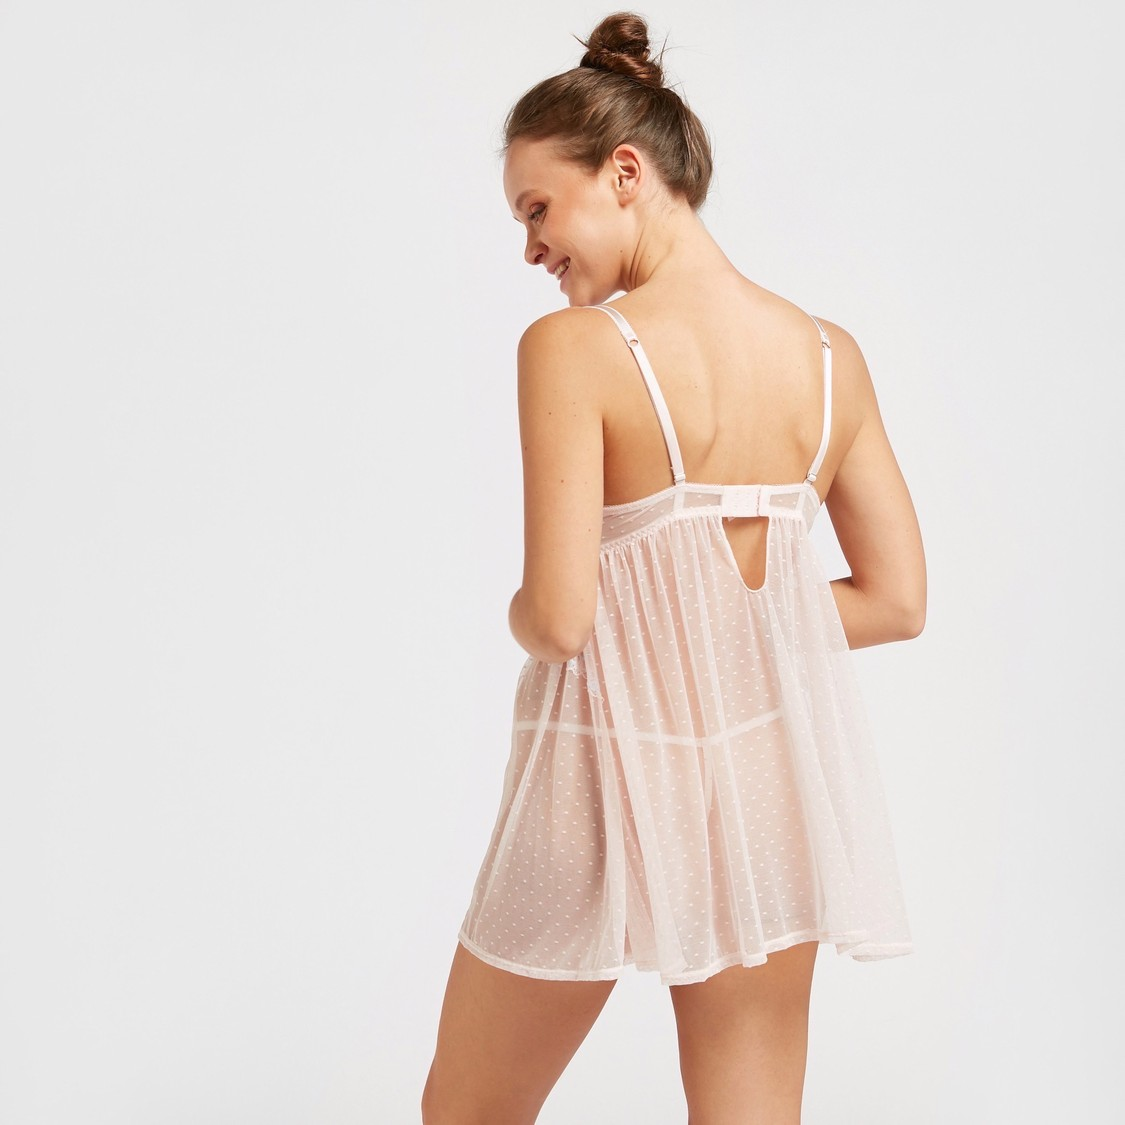 Lace Detail Babydoll Dress with Thongs